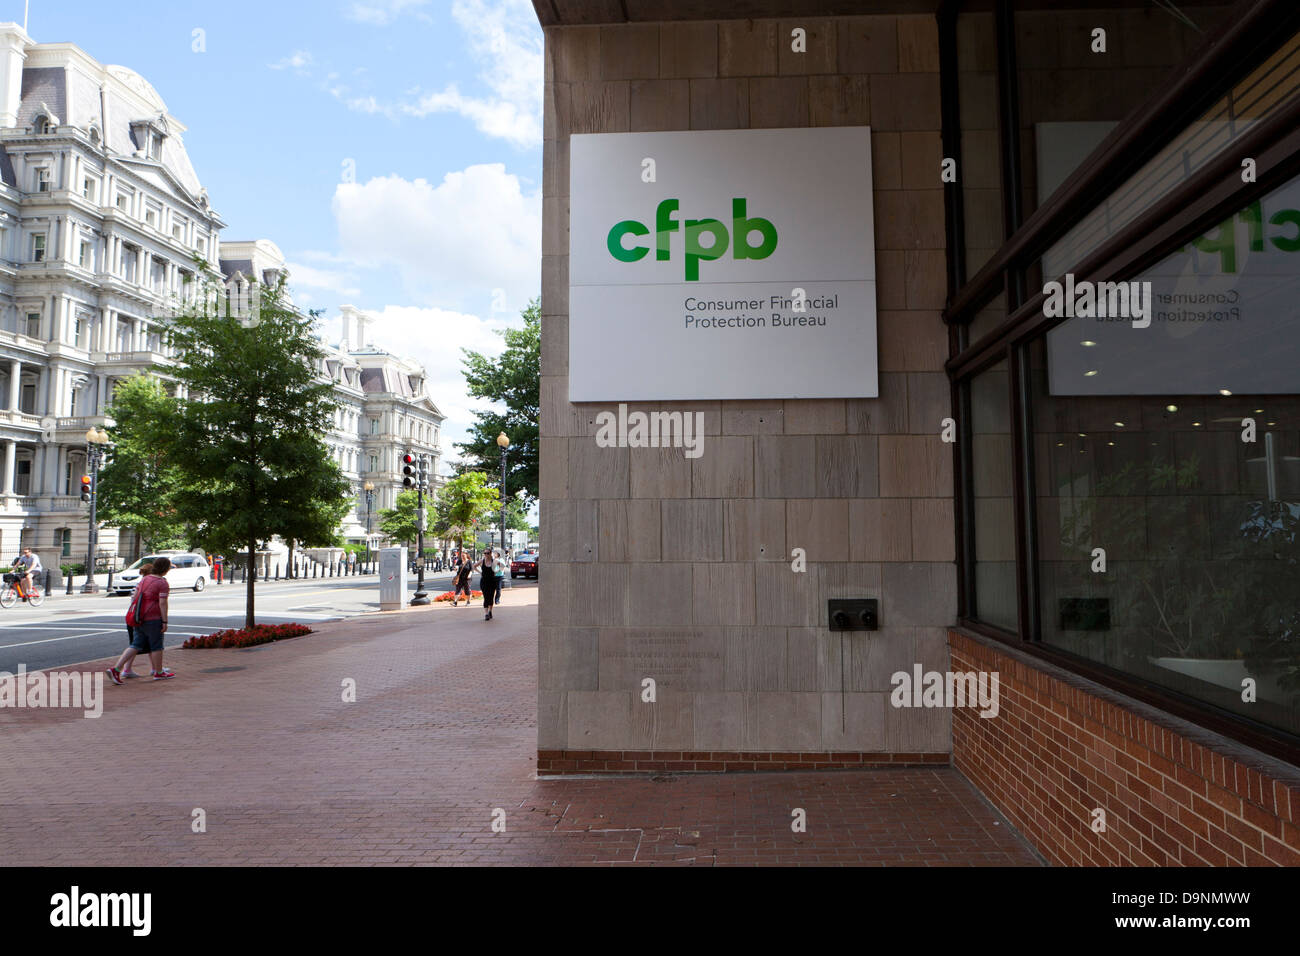 consumer financial protection bureau headquarters building stock photo royalty free image. Black Bedroom Furniture Sets. Home Design Ideas